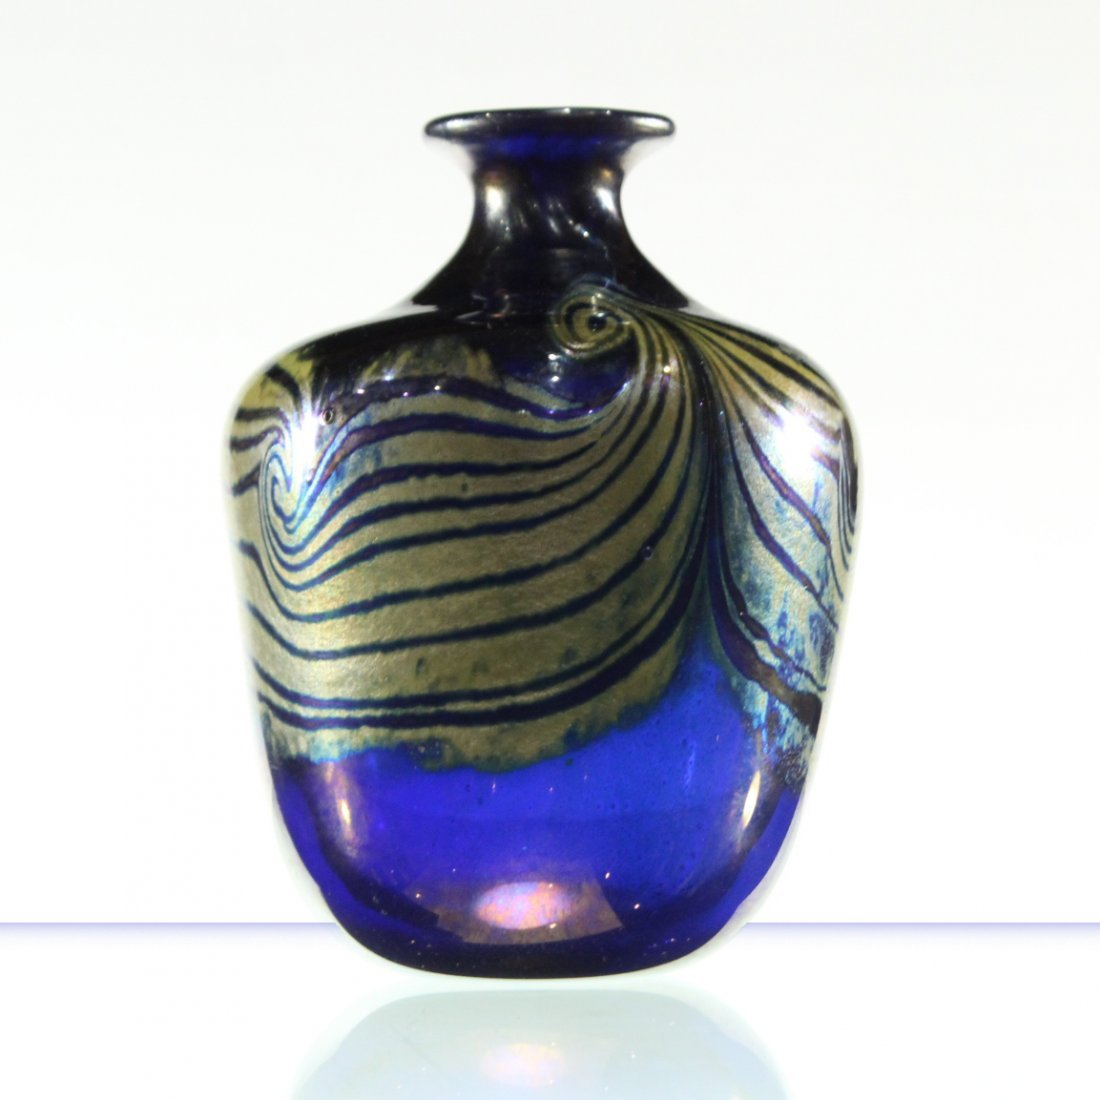 MICHAEL PAVLIK Studio Art Glass Vase Signed COBALT BLUE